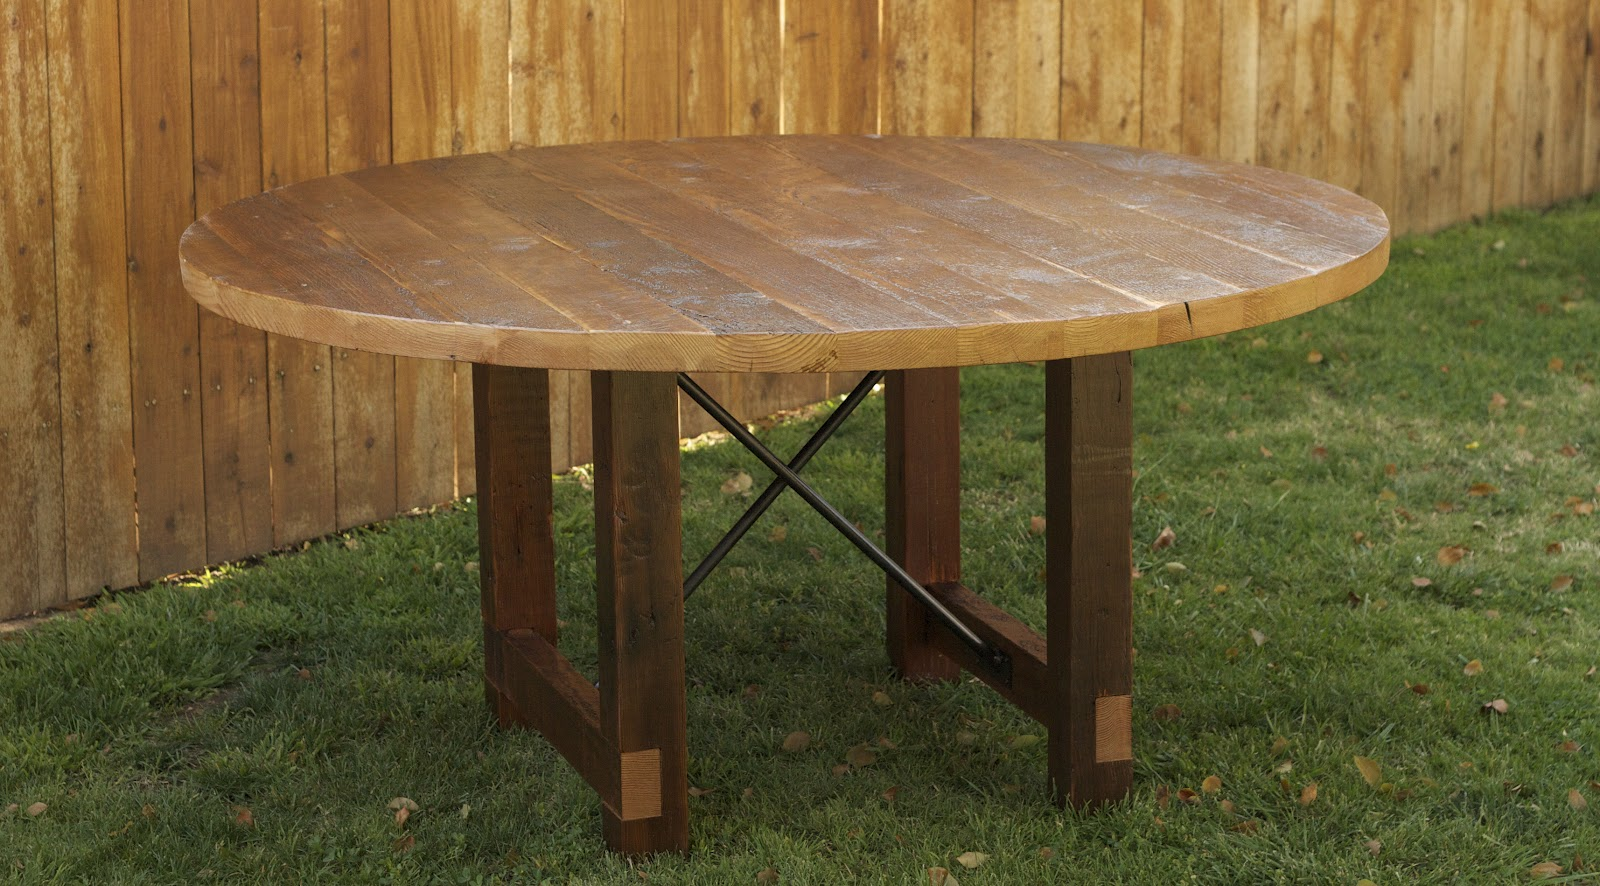 arbor exchange reclaimed wood furniture round dining table with metal x. Black Bedroom Furniture Sets. Home Design Ideas